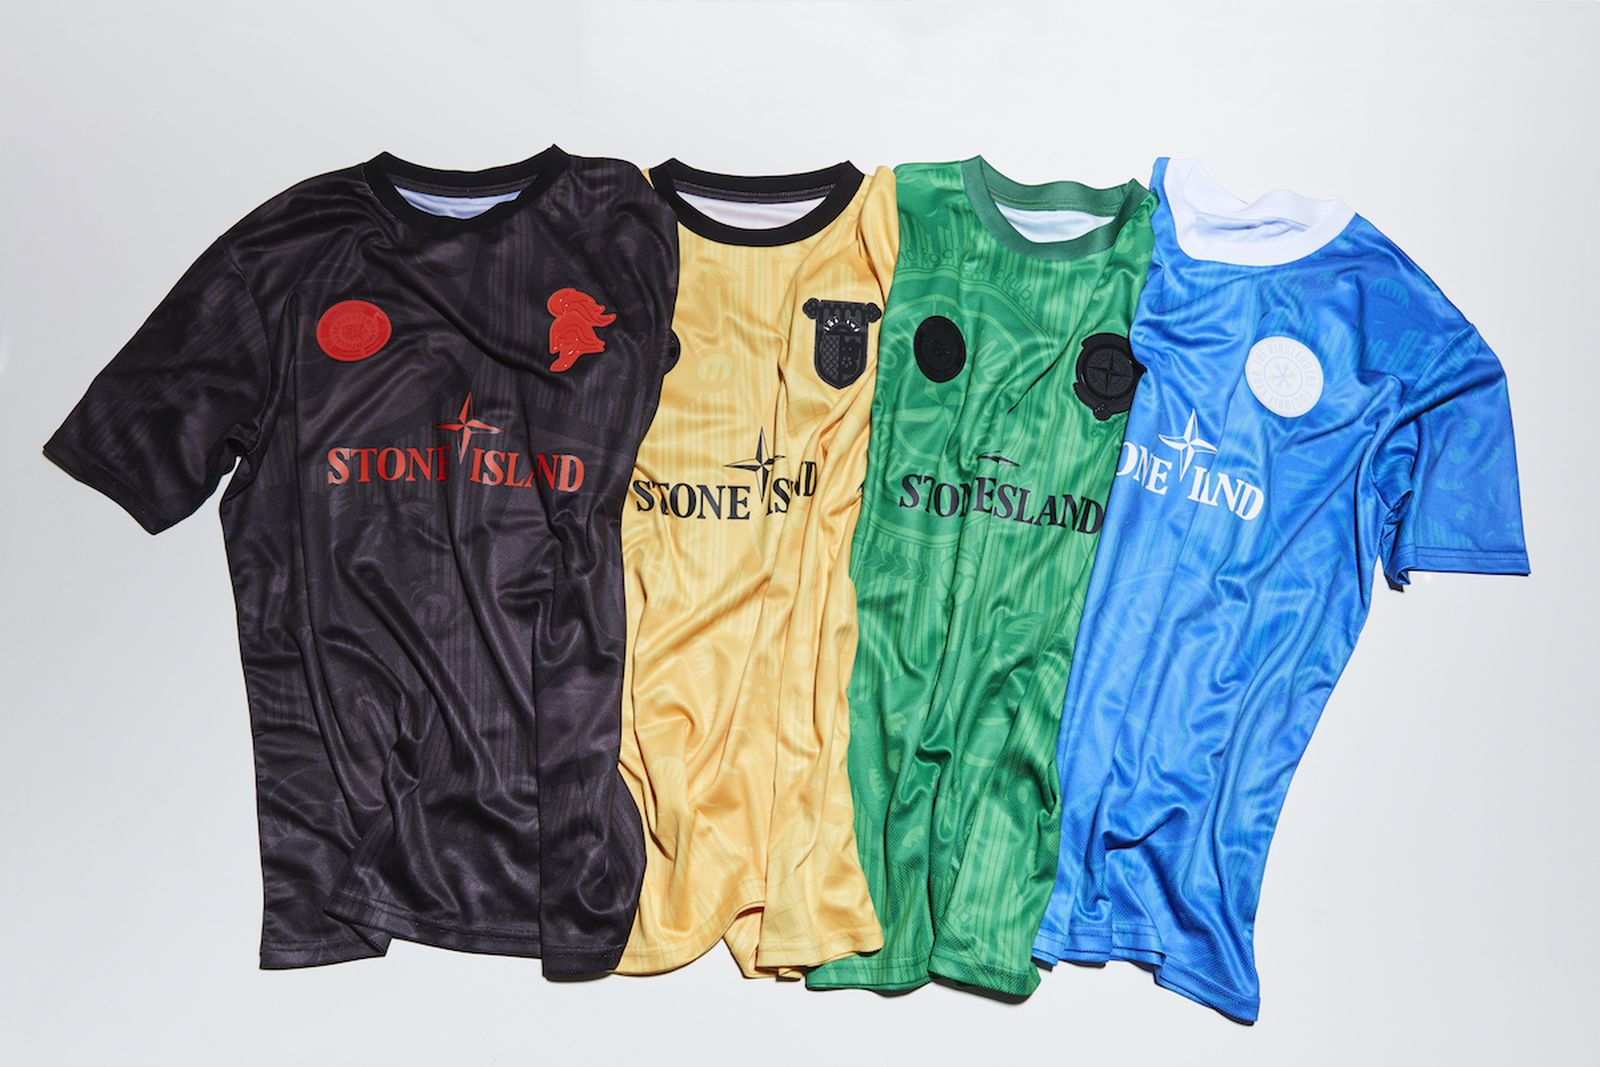 Stone Island Chinatown Invitational Soccer Jerseys